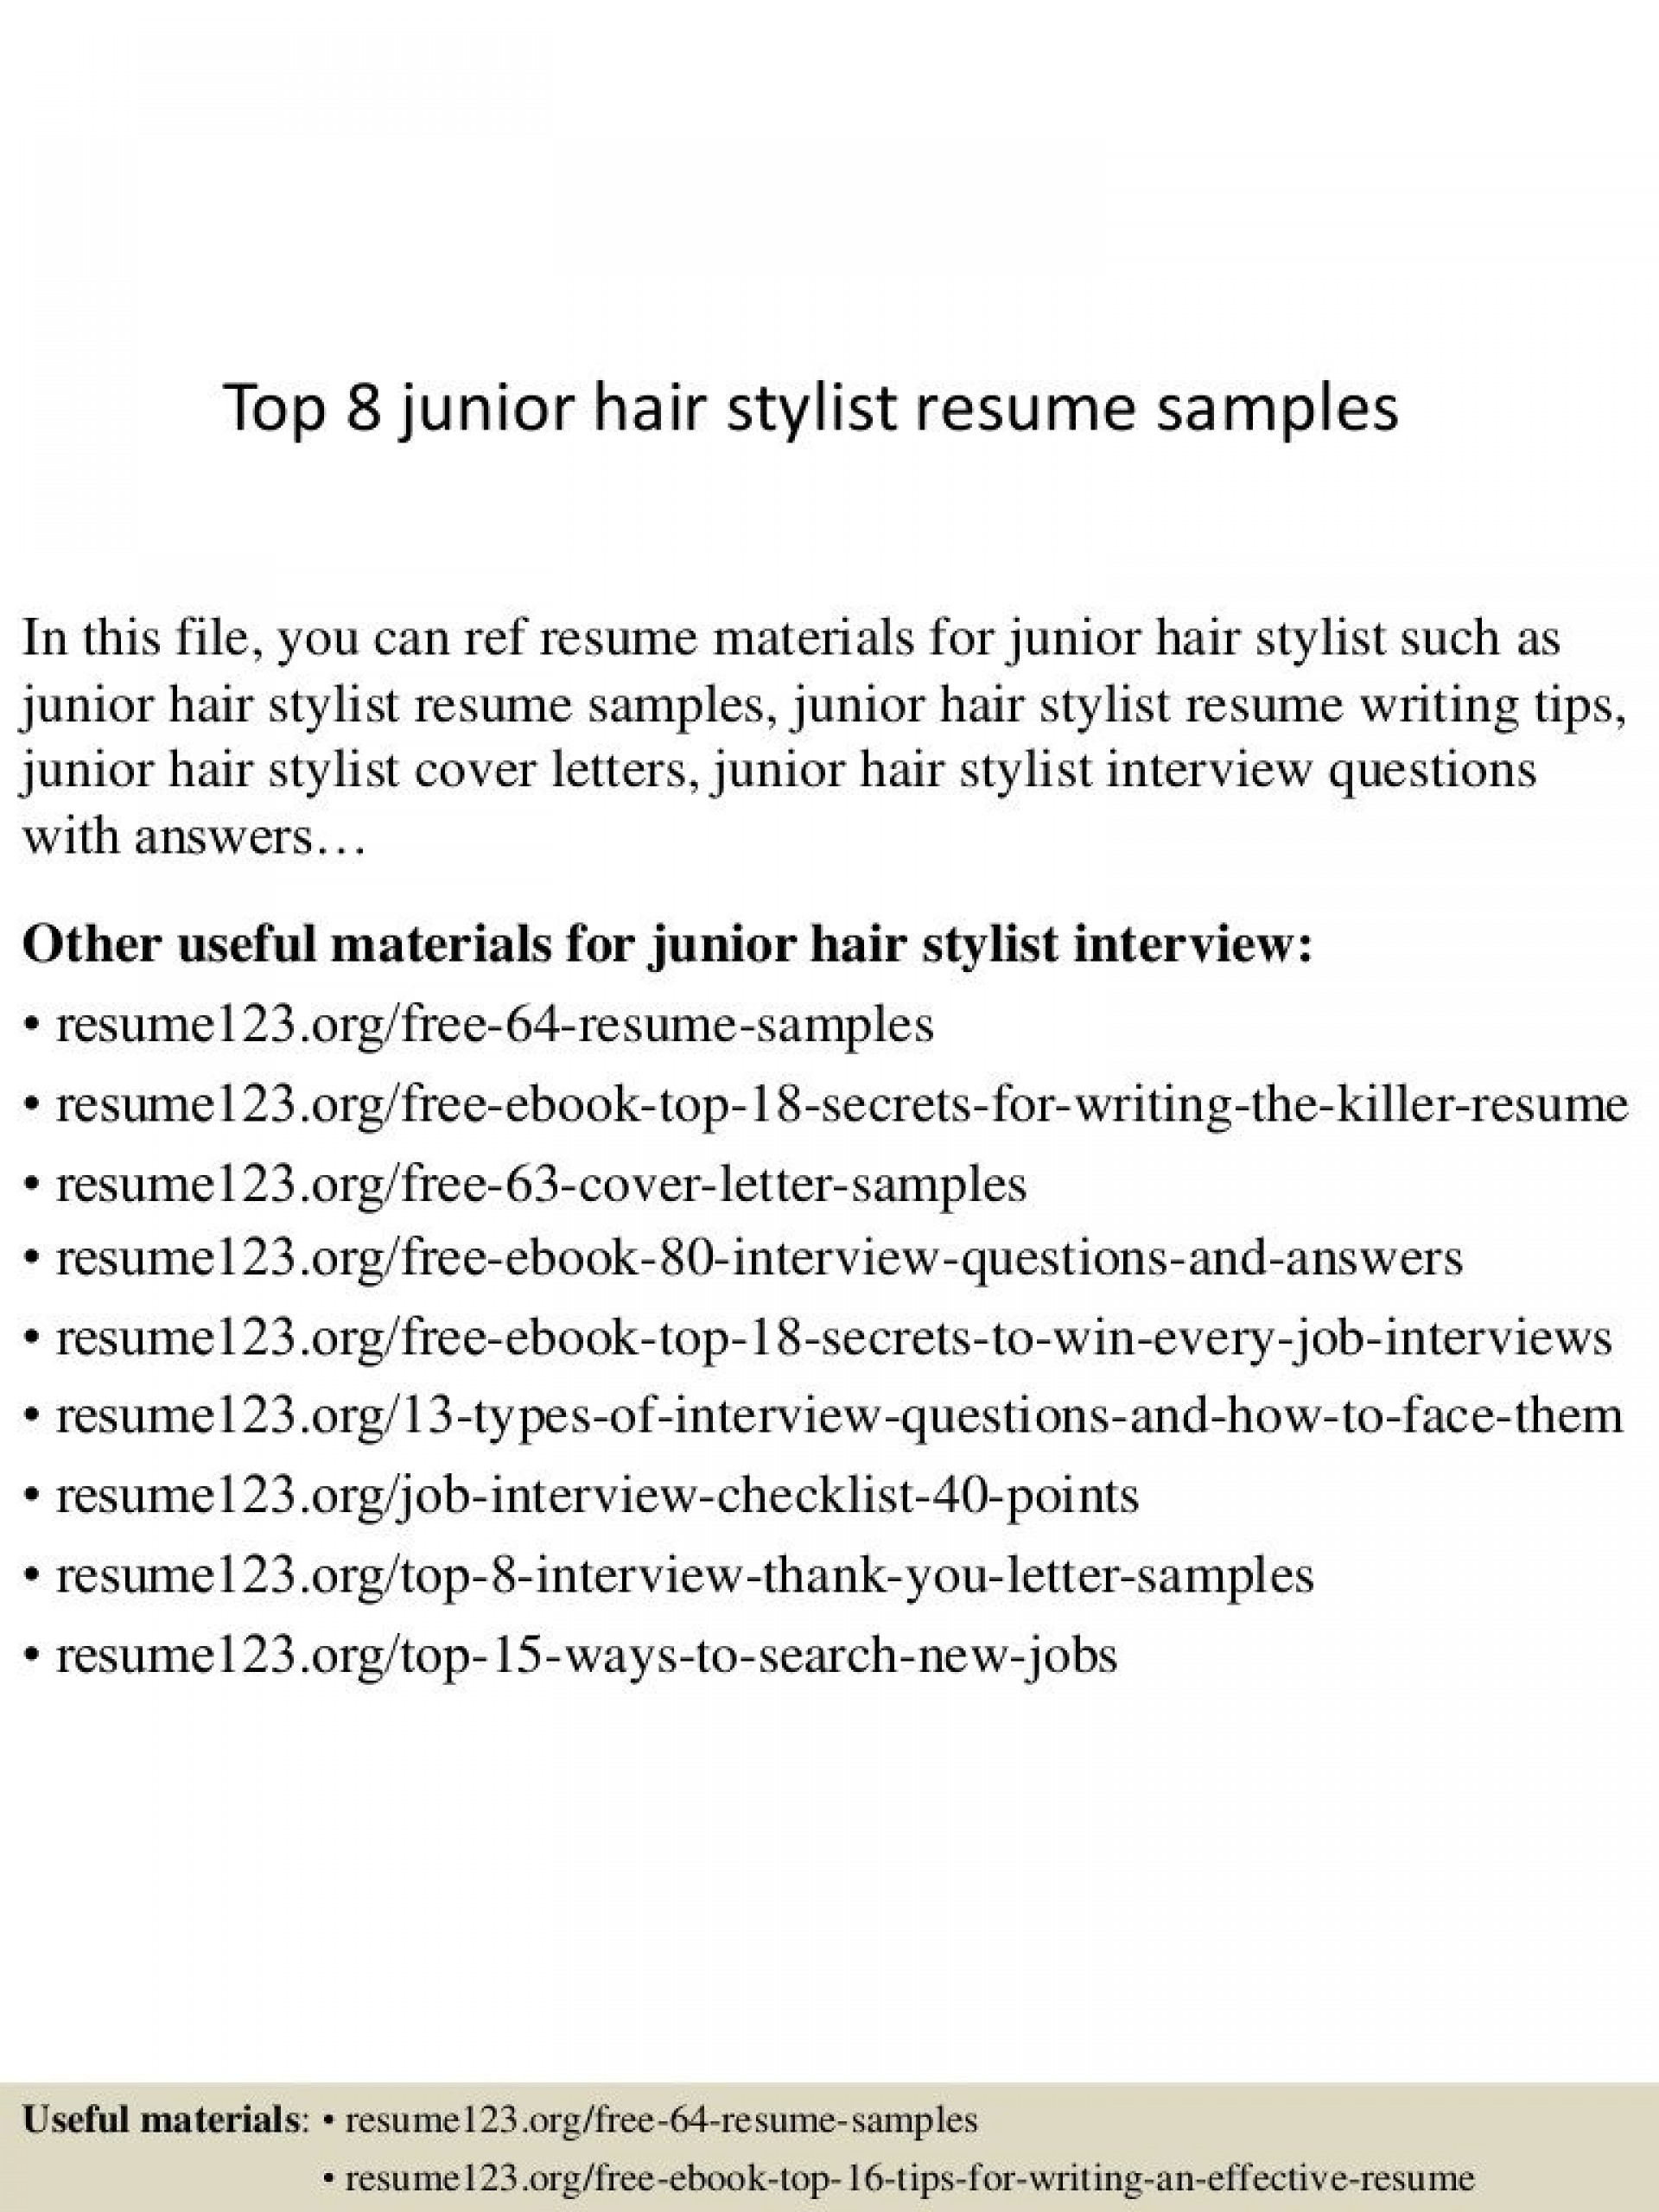 009 Stunning Hair Stylist Resume Template Sample  Word Free Download1920